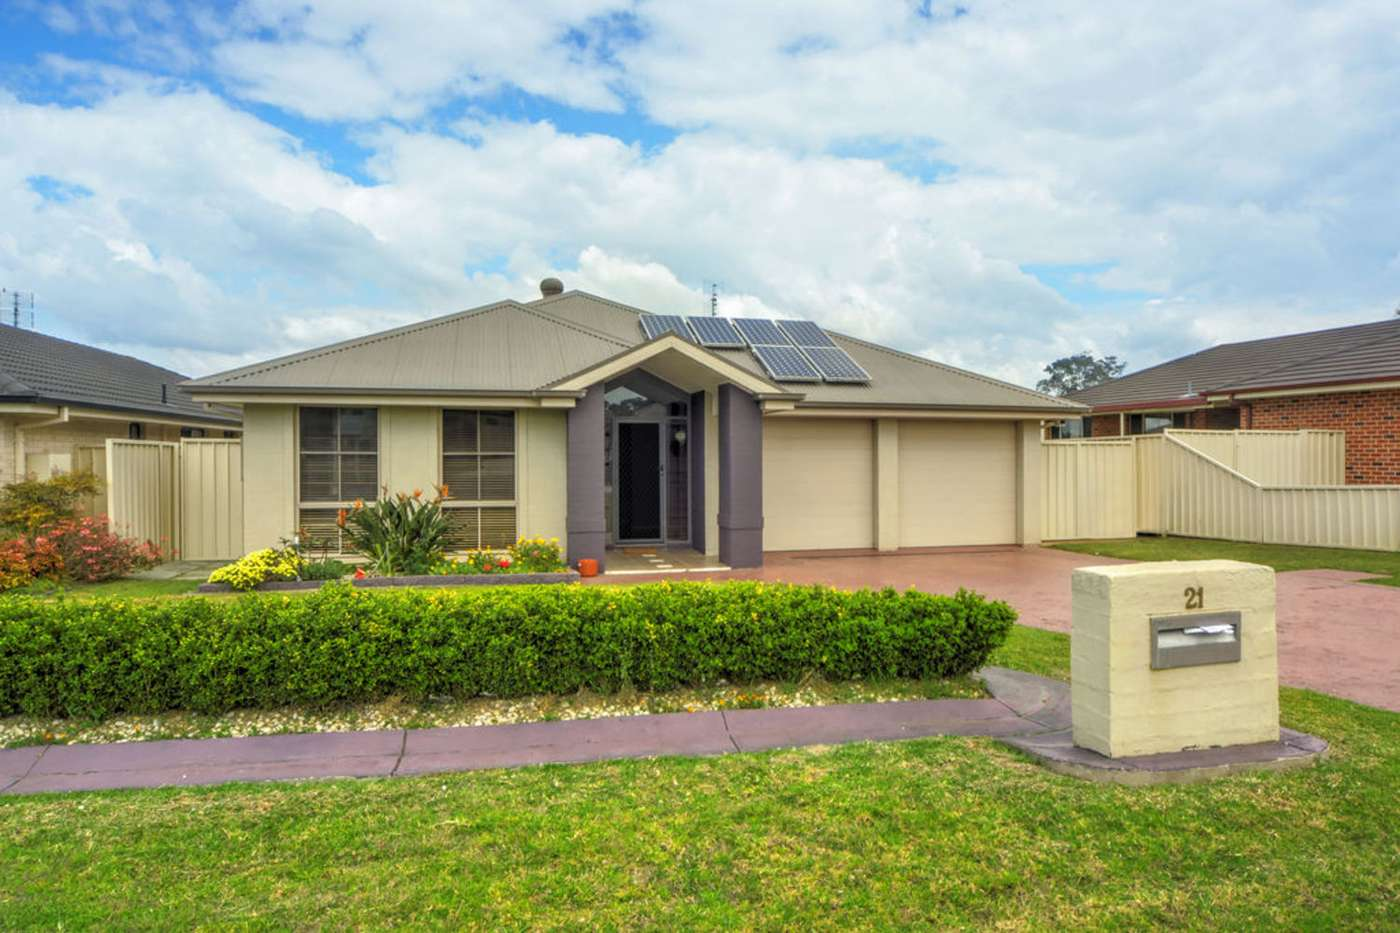 Main view of Homely house listing, 21 Correa Court, Worrigee, NSW 2540